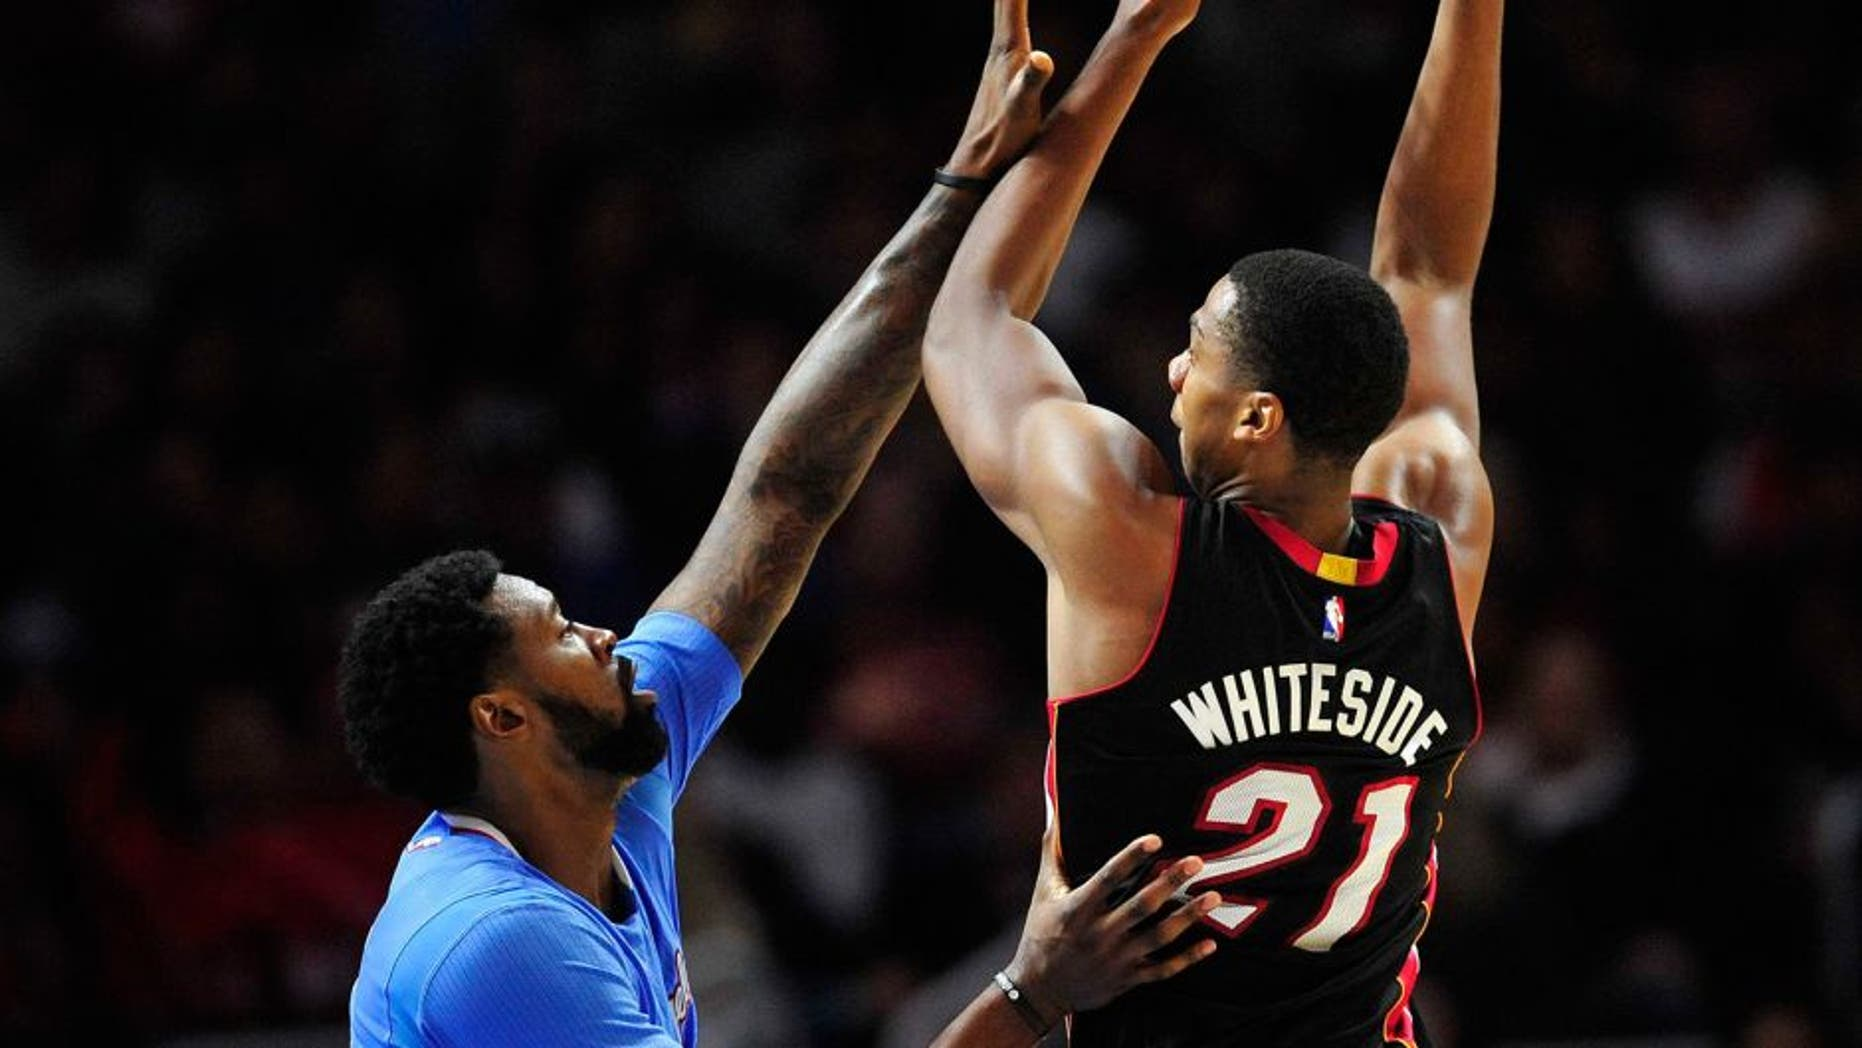 January 11, 2015; Los Angeles, CA, USA; Miami Heat center Hassan Whiteside (21) shoots against the defense of Los Angeles Clippers center DeAndre Jordan (6) during the second half at Staples Center. Mandatory Credit: Gary A. Vasquez-USA TODAY Sports